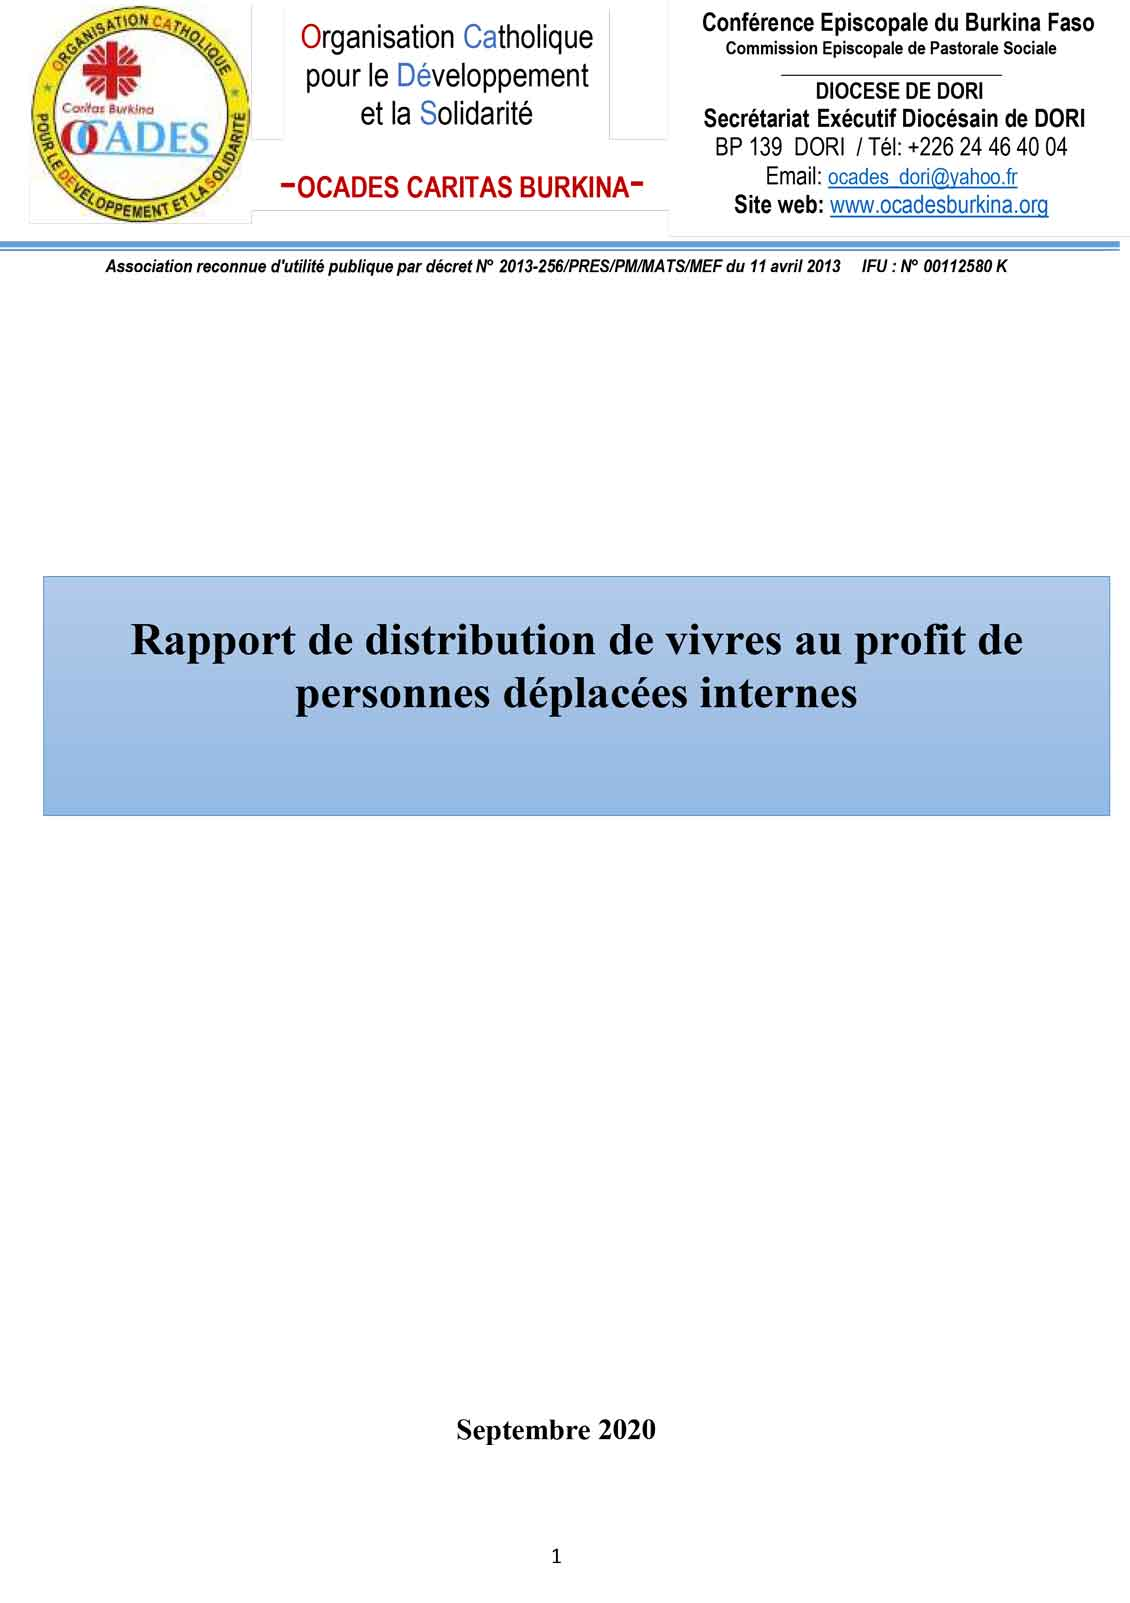 Rapport de distribution 01